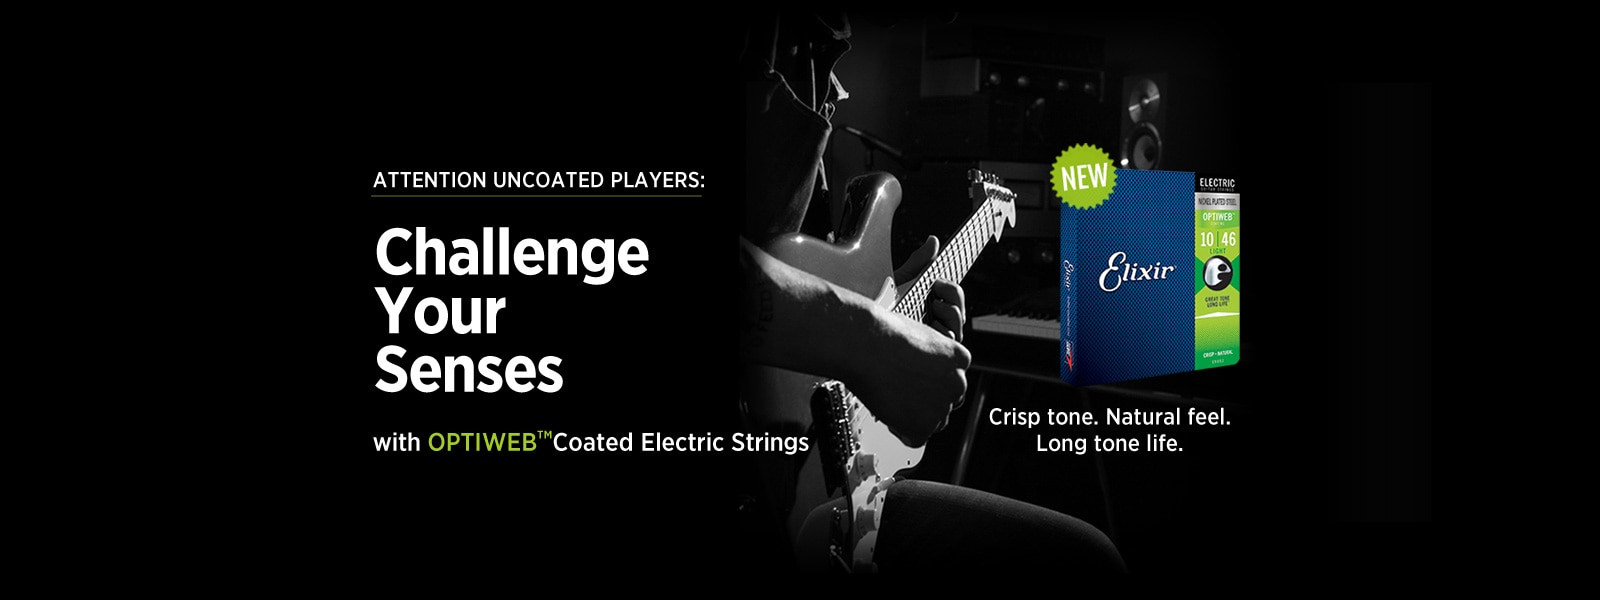 Optiweb coated electric strings